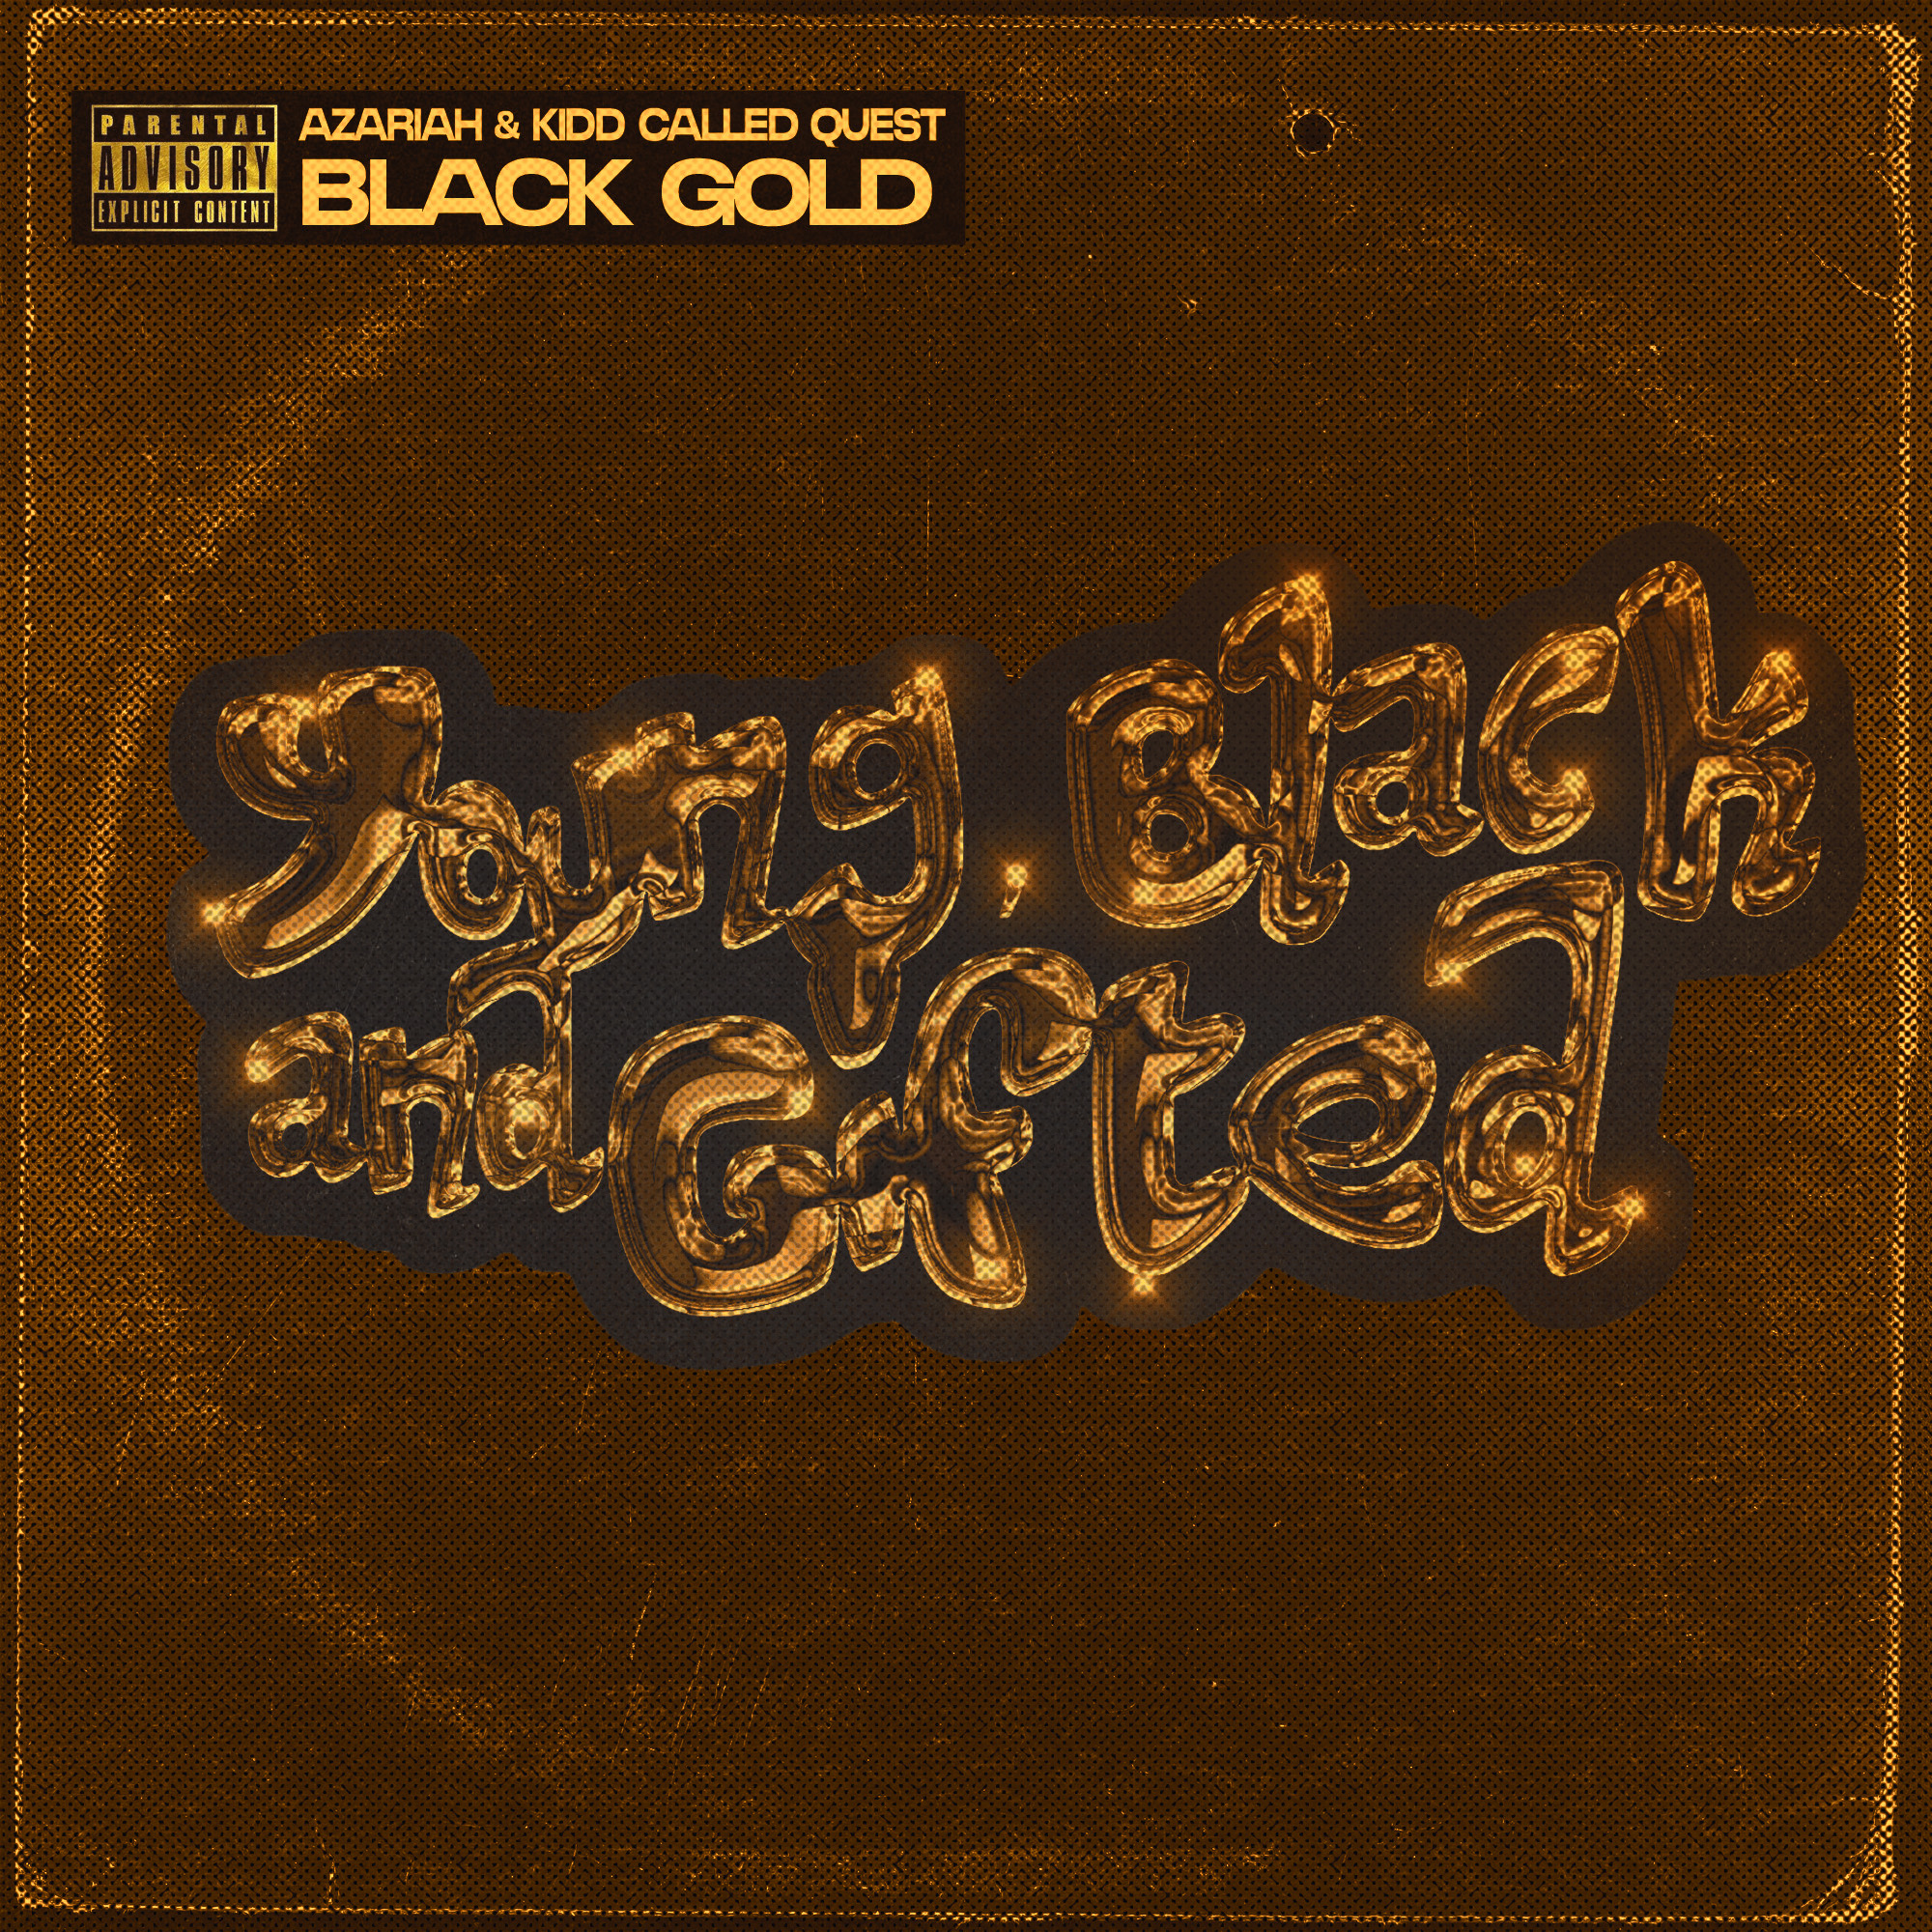 """Young black and Gifted share """"Black Gold"""" project"""